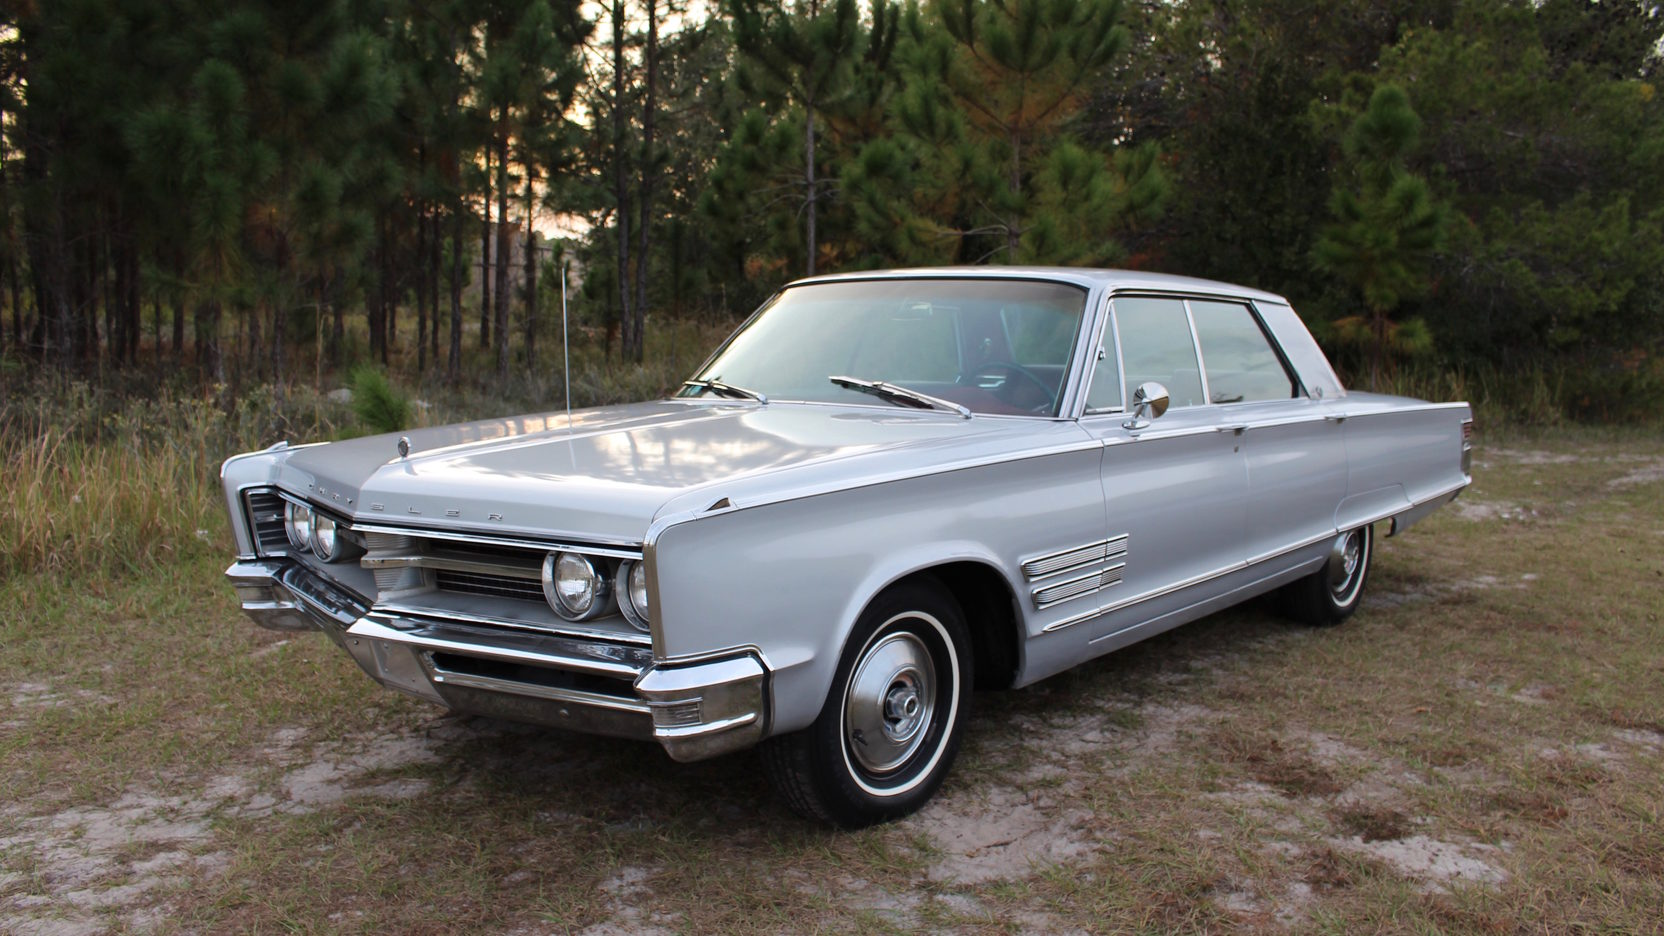 hight resolution of 1966 chrysler 300 g110 1 kissimmee 2017 rh mecum com at 1966 chrysler 300 1 full